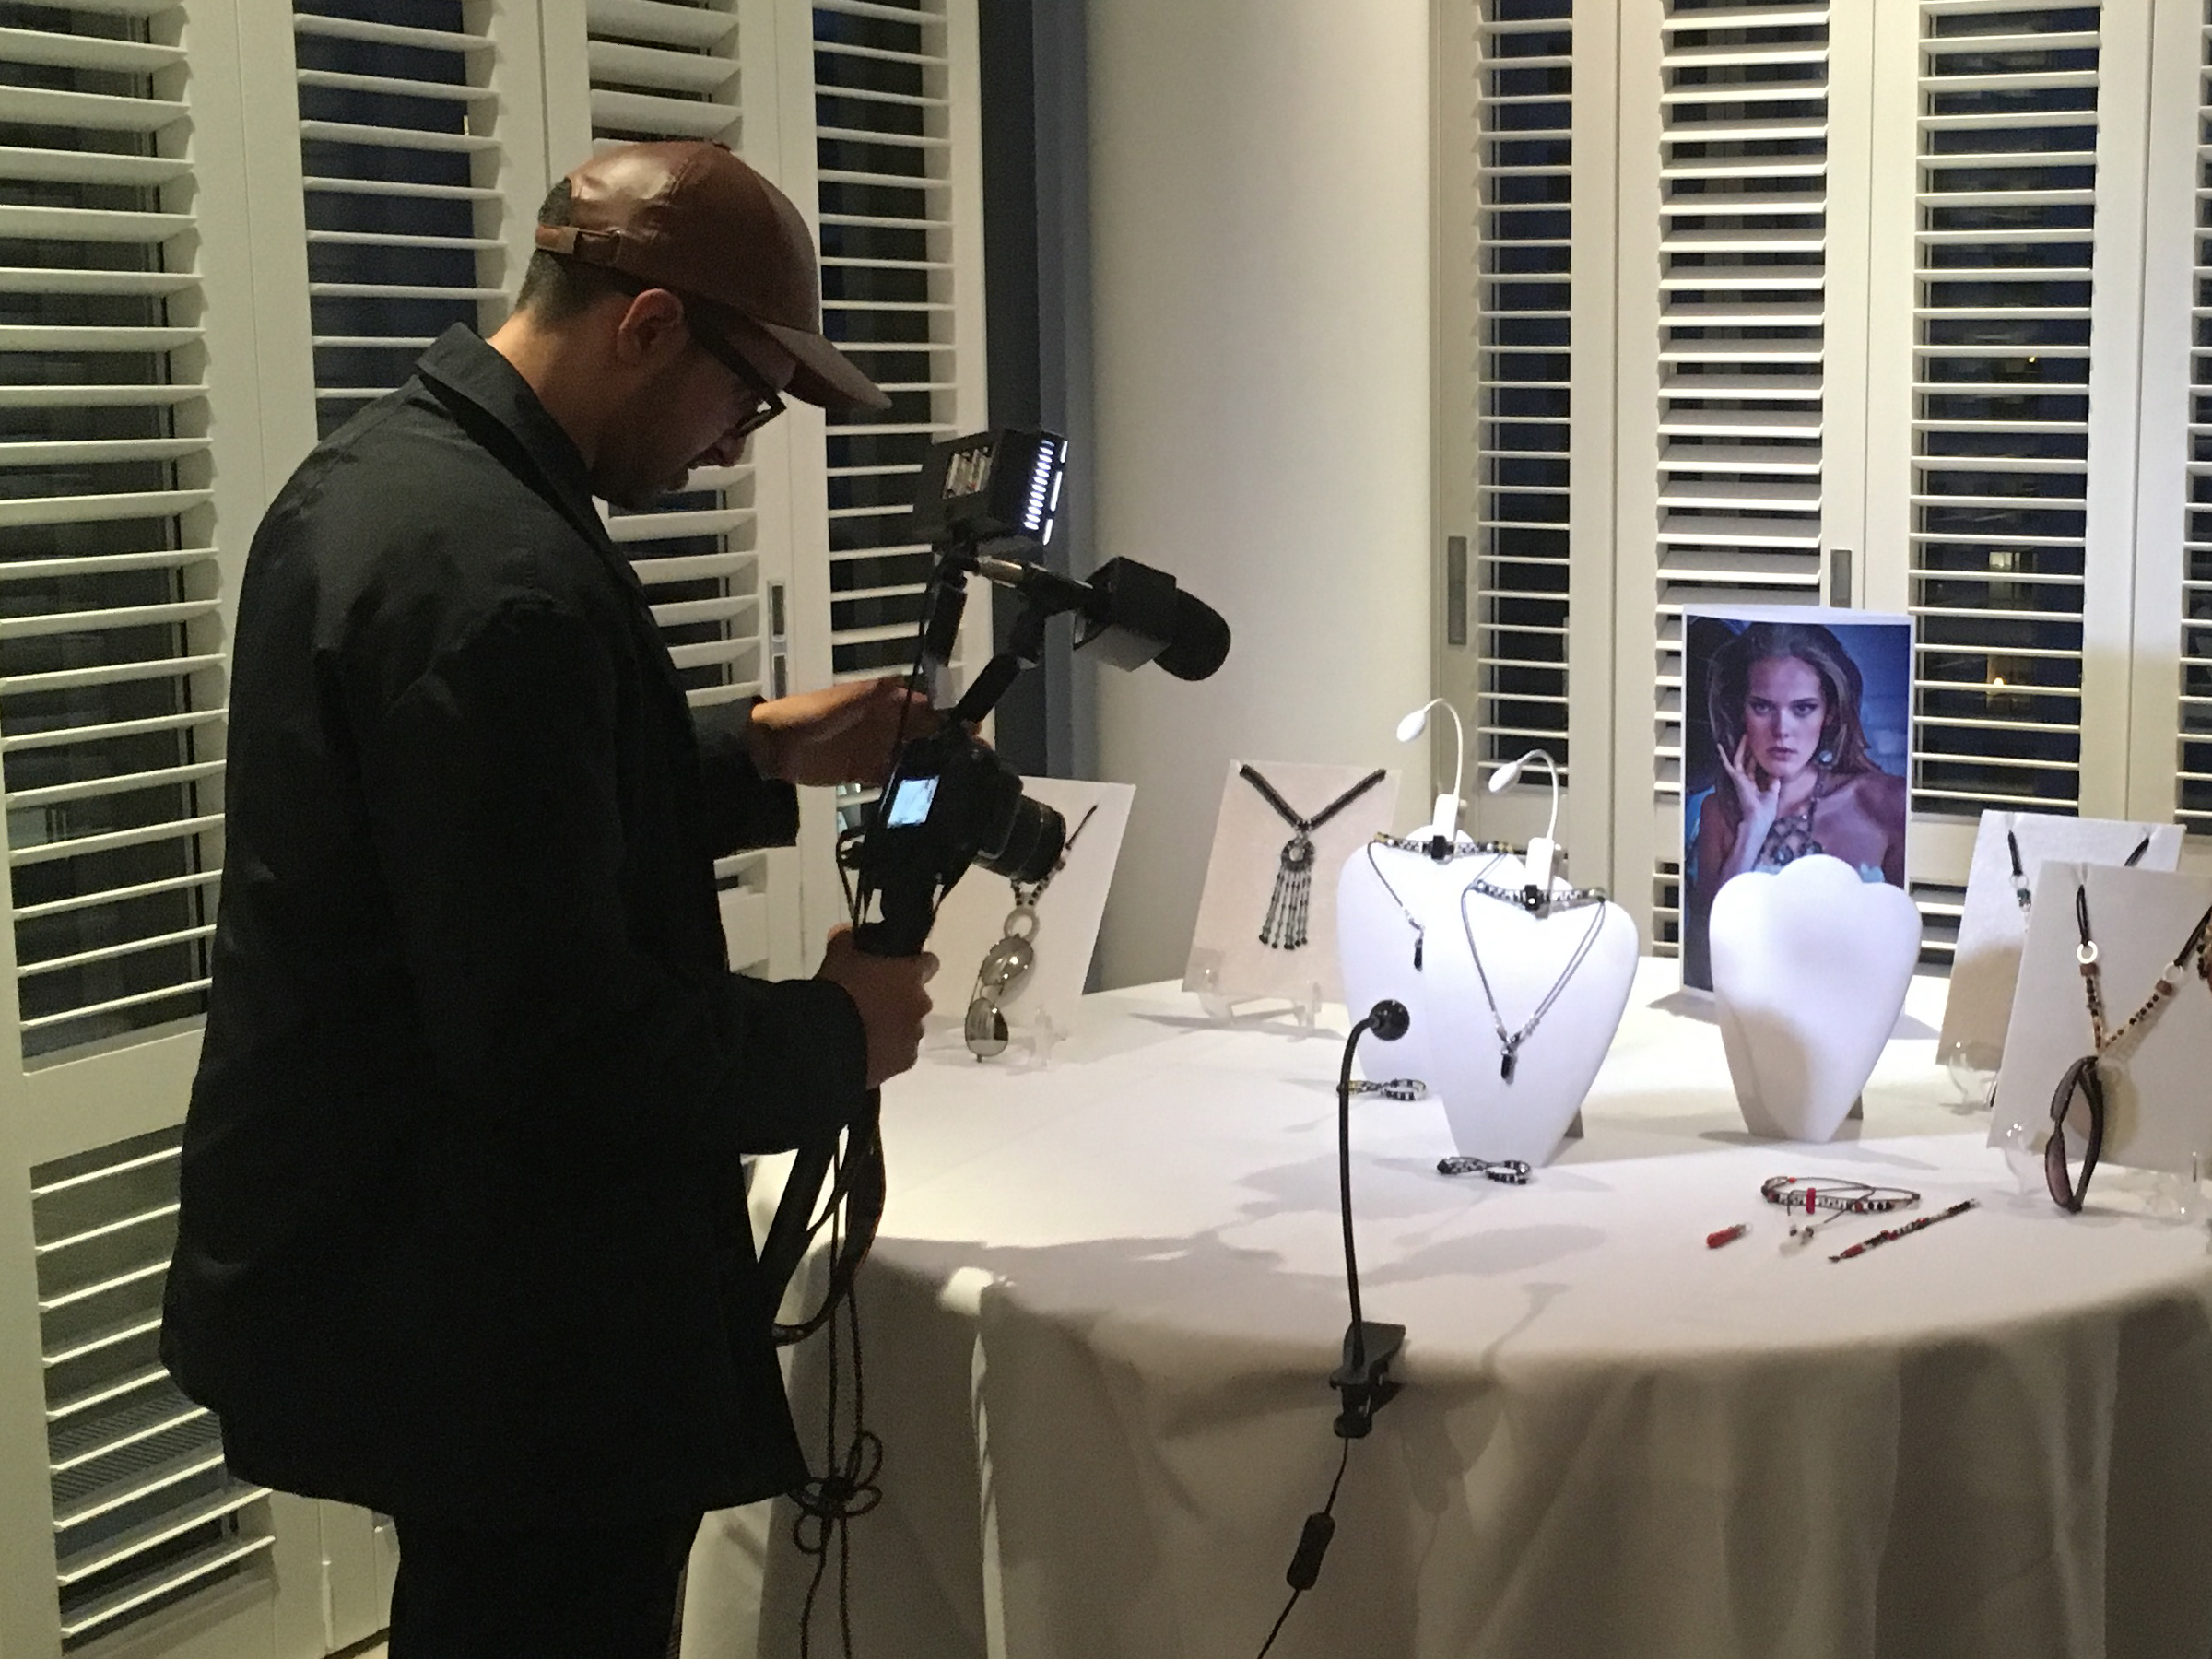 - Our F1 Collection captured the attention of the press at the Musesa exhibit at the Ritz-Carlton Residences Montreal during the Grand Prix Montreal week.